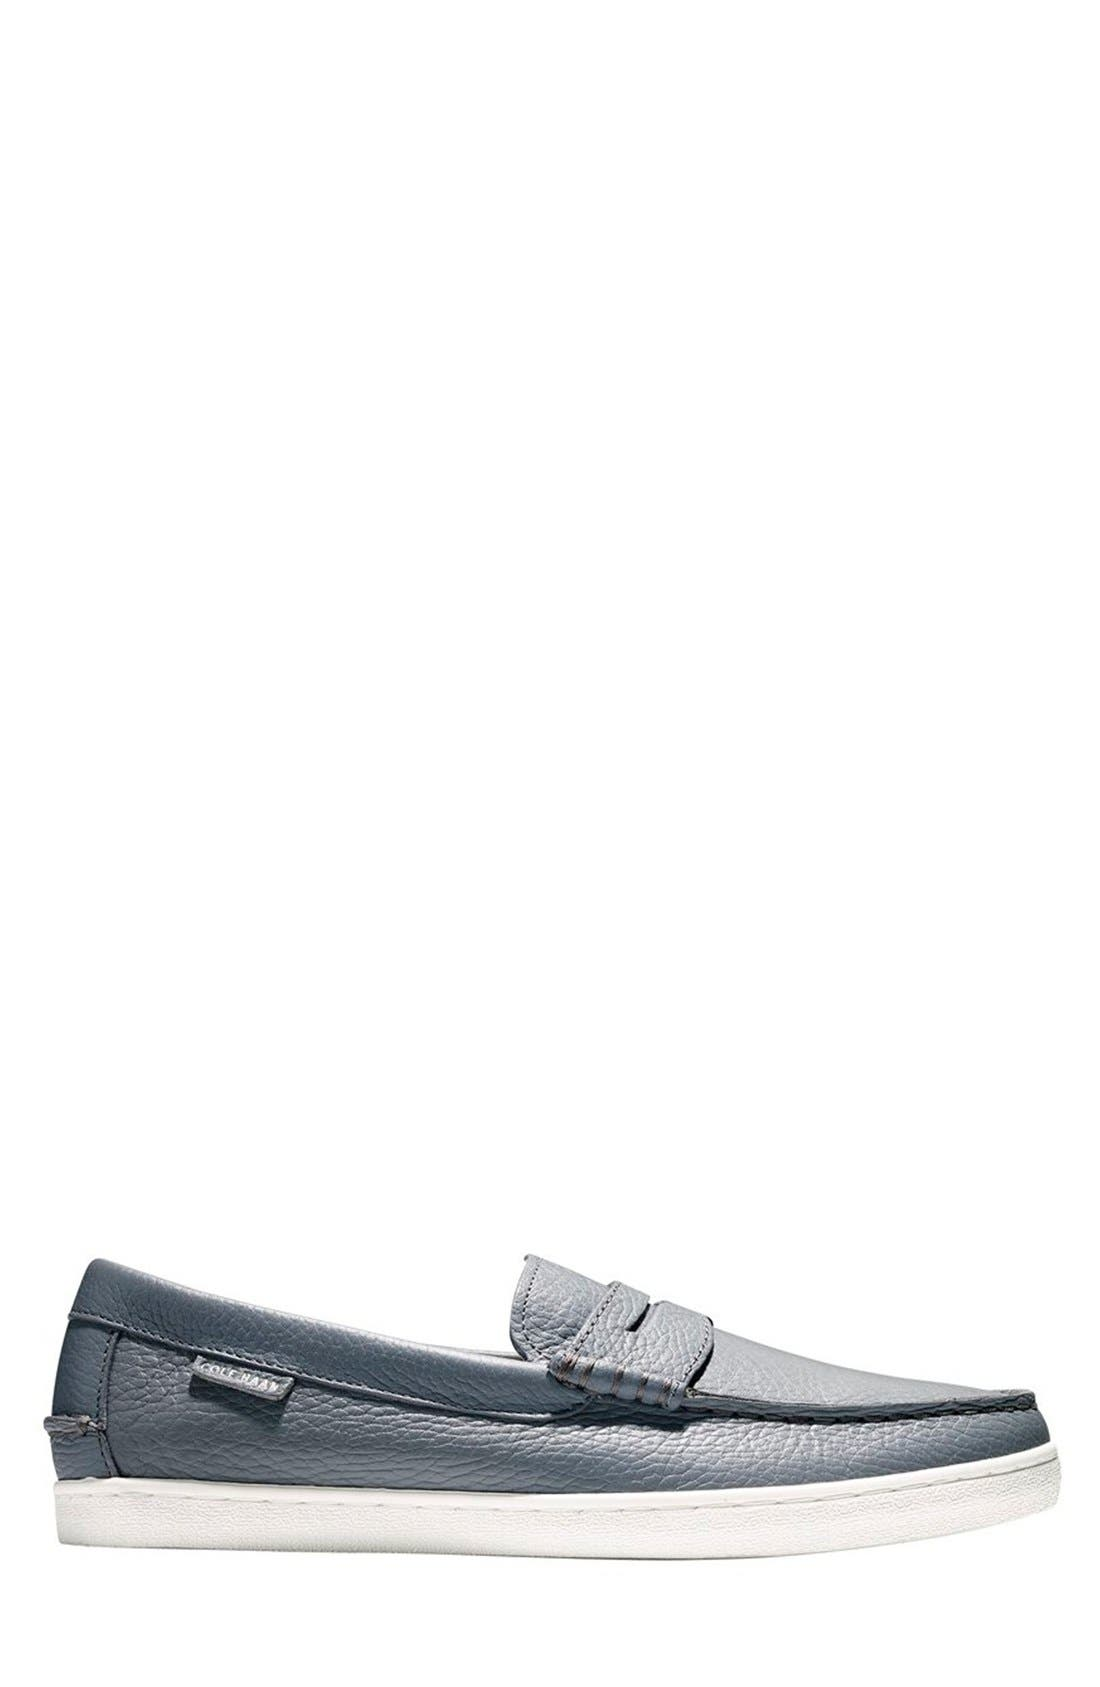 'Pinch' Penny Loafer,                             Alternate thumbnail 2, color,                             Grey Leather/ White